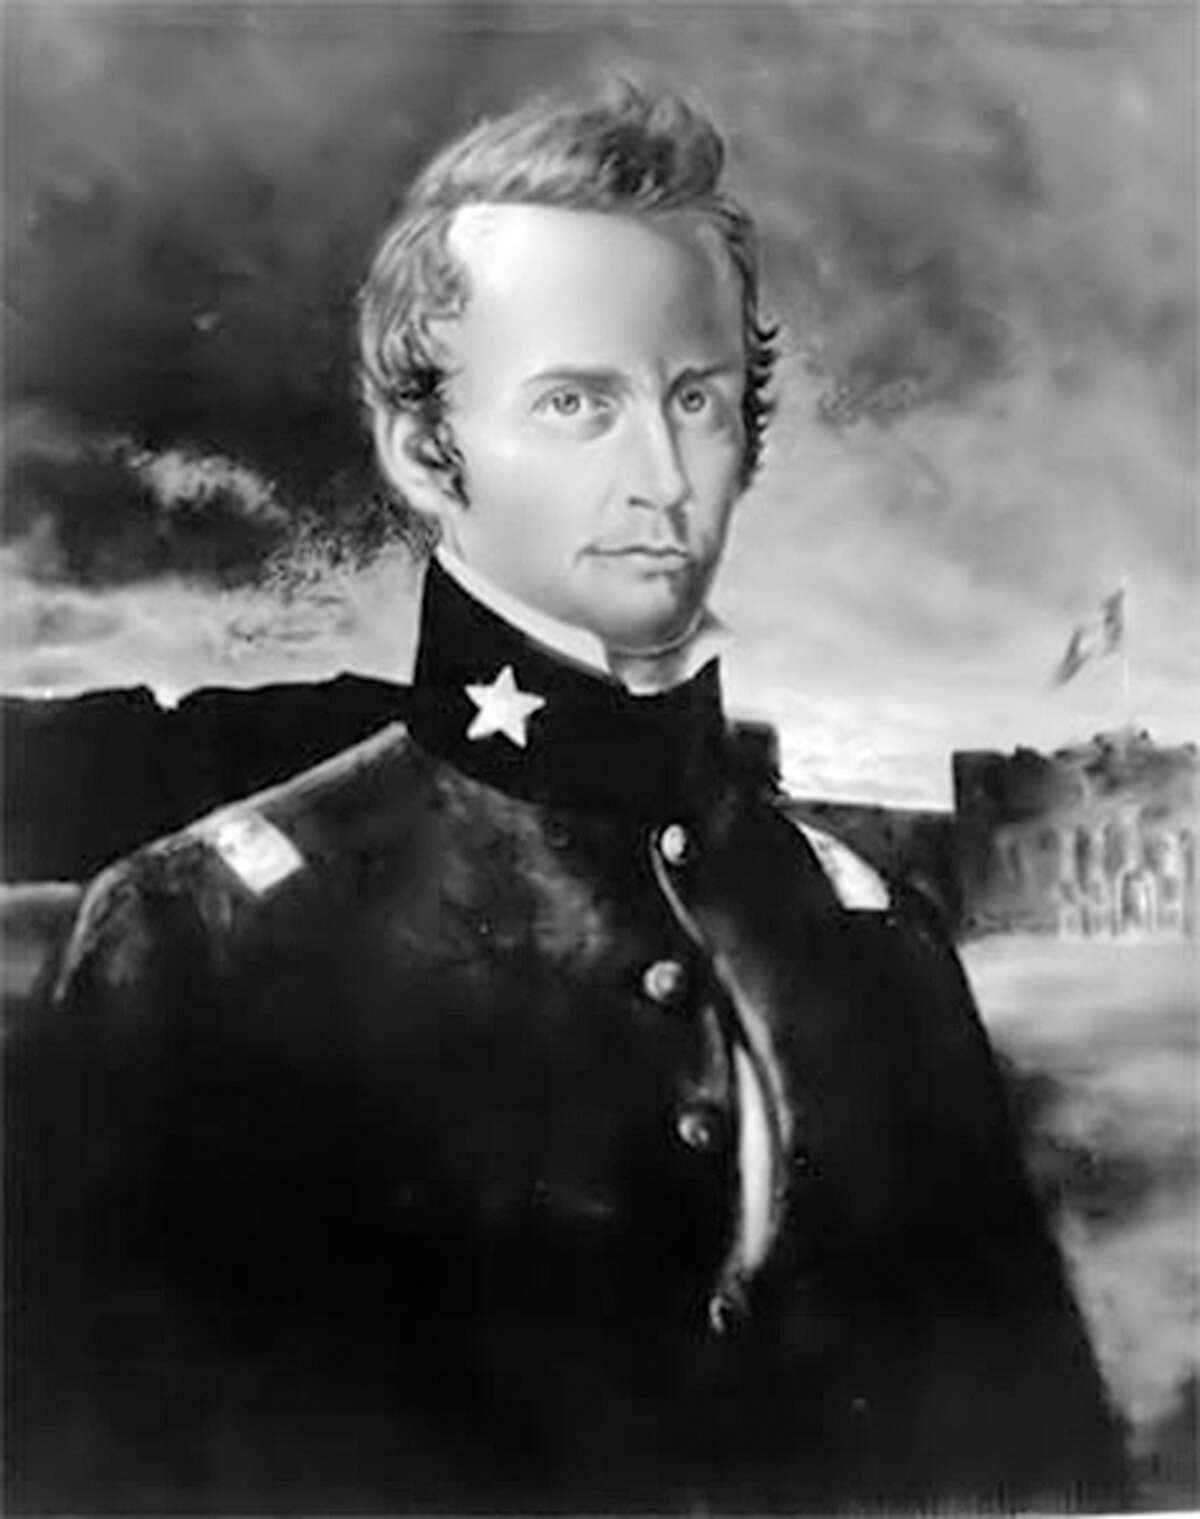 Lt. Col. William B. Travis was the commander at the Alamo during the 1836 siege.